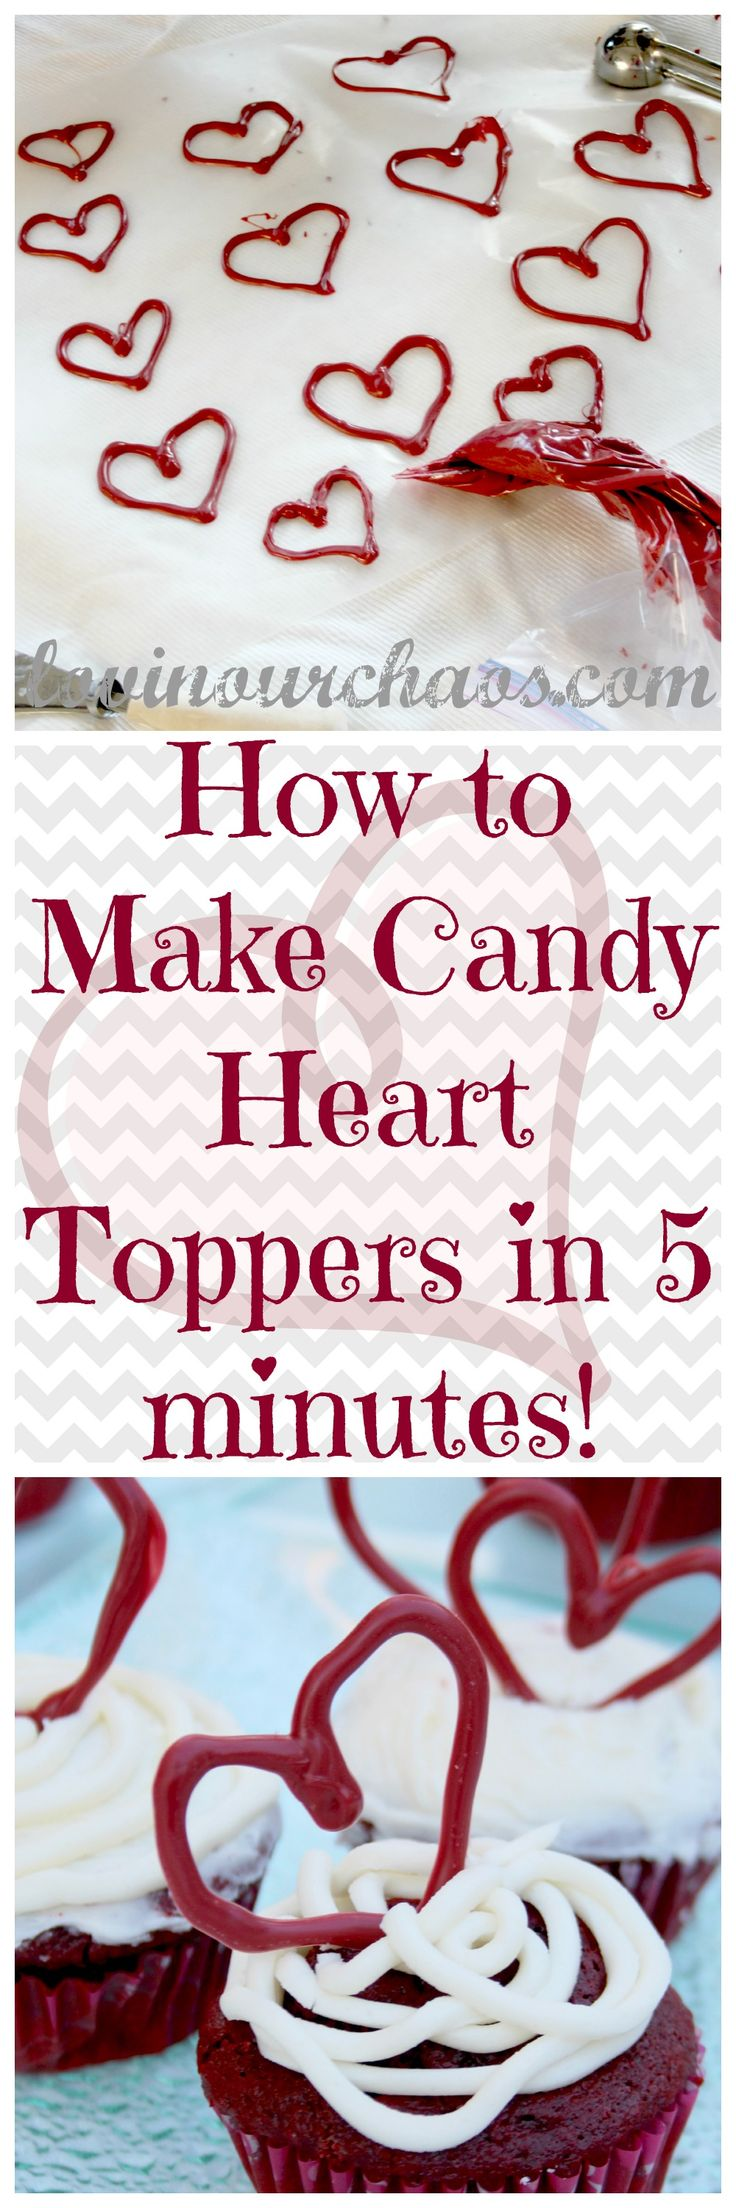 How to Make Candy Heart Toppers